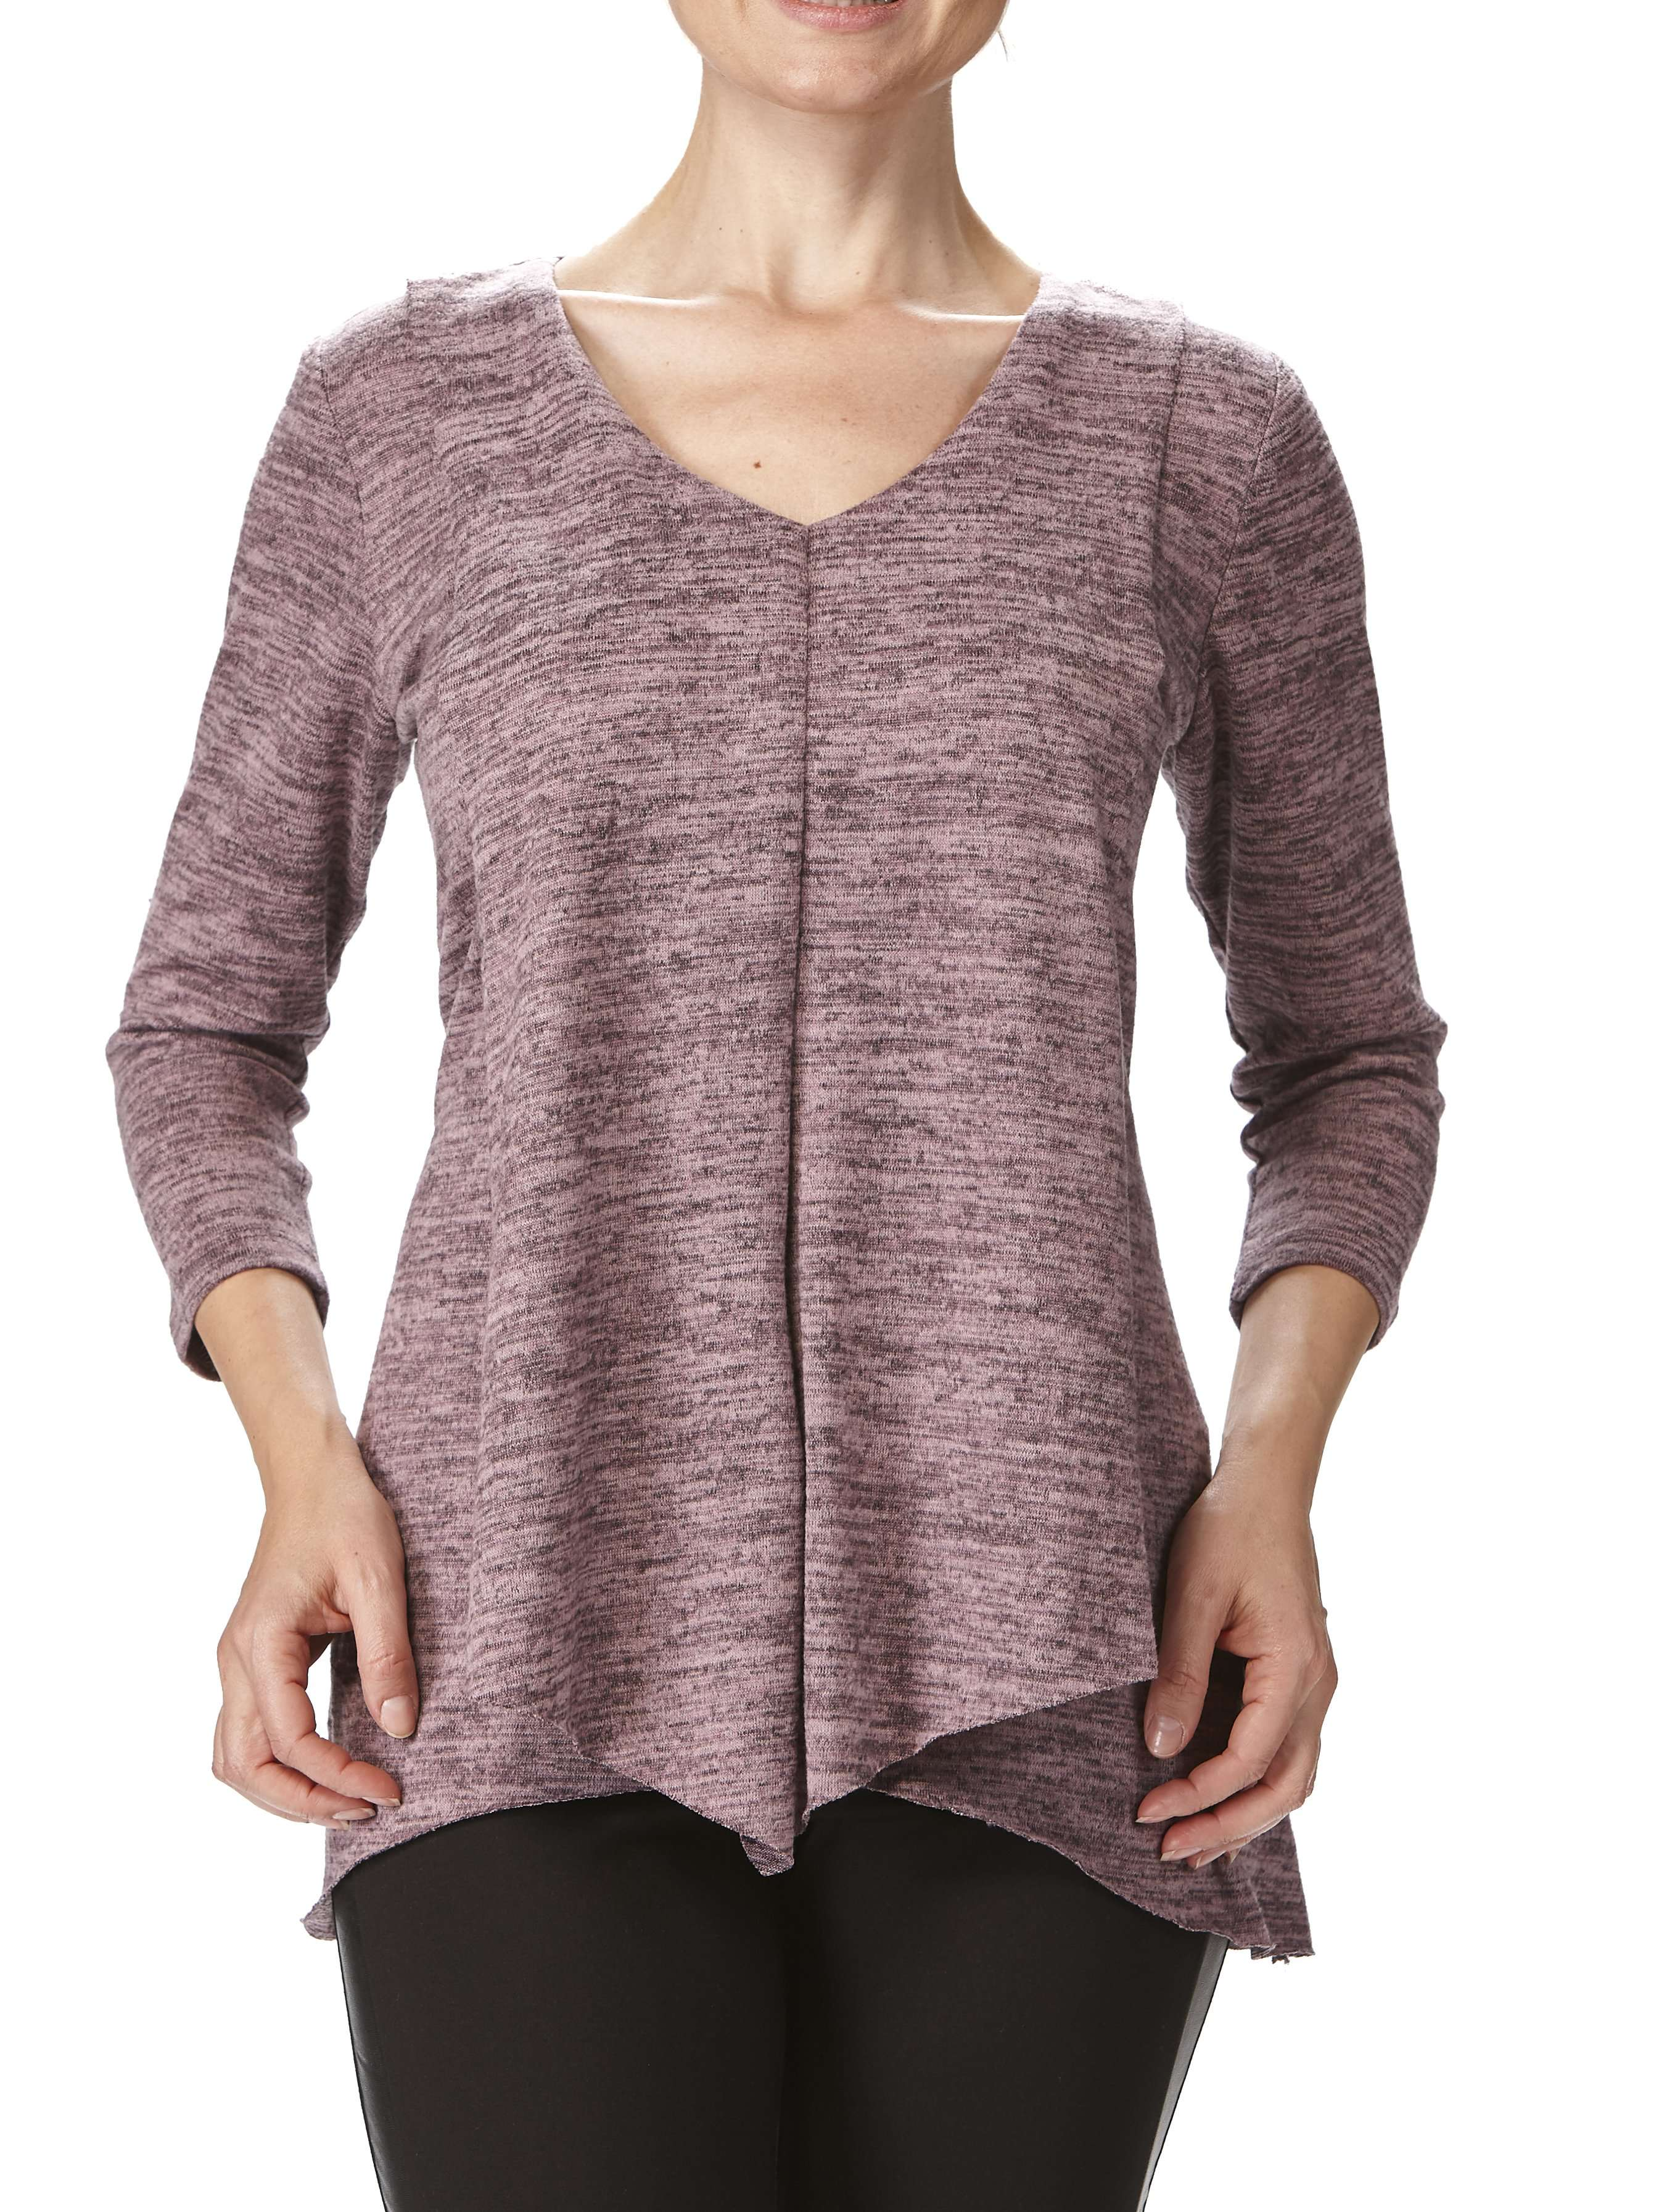 Women's Rose Flyaway Tunic Top Flattering Fit - Made in Canada - Yvonne Marie - Yvonne Marie